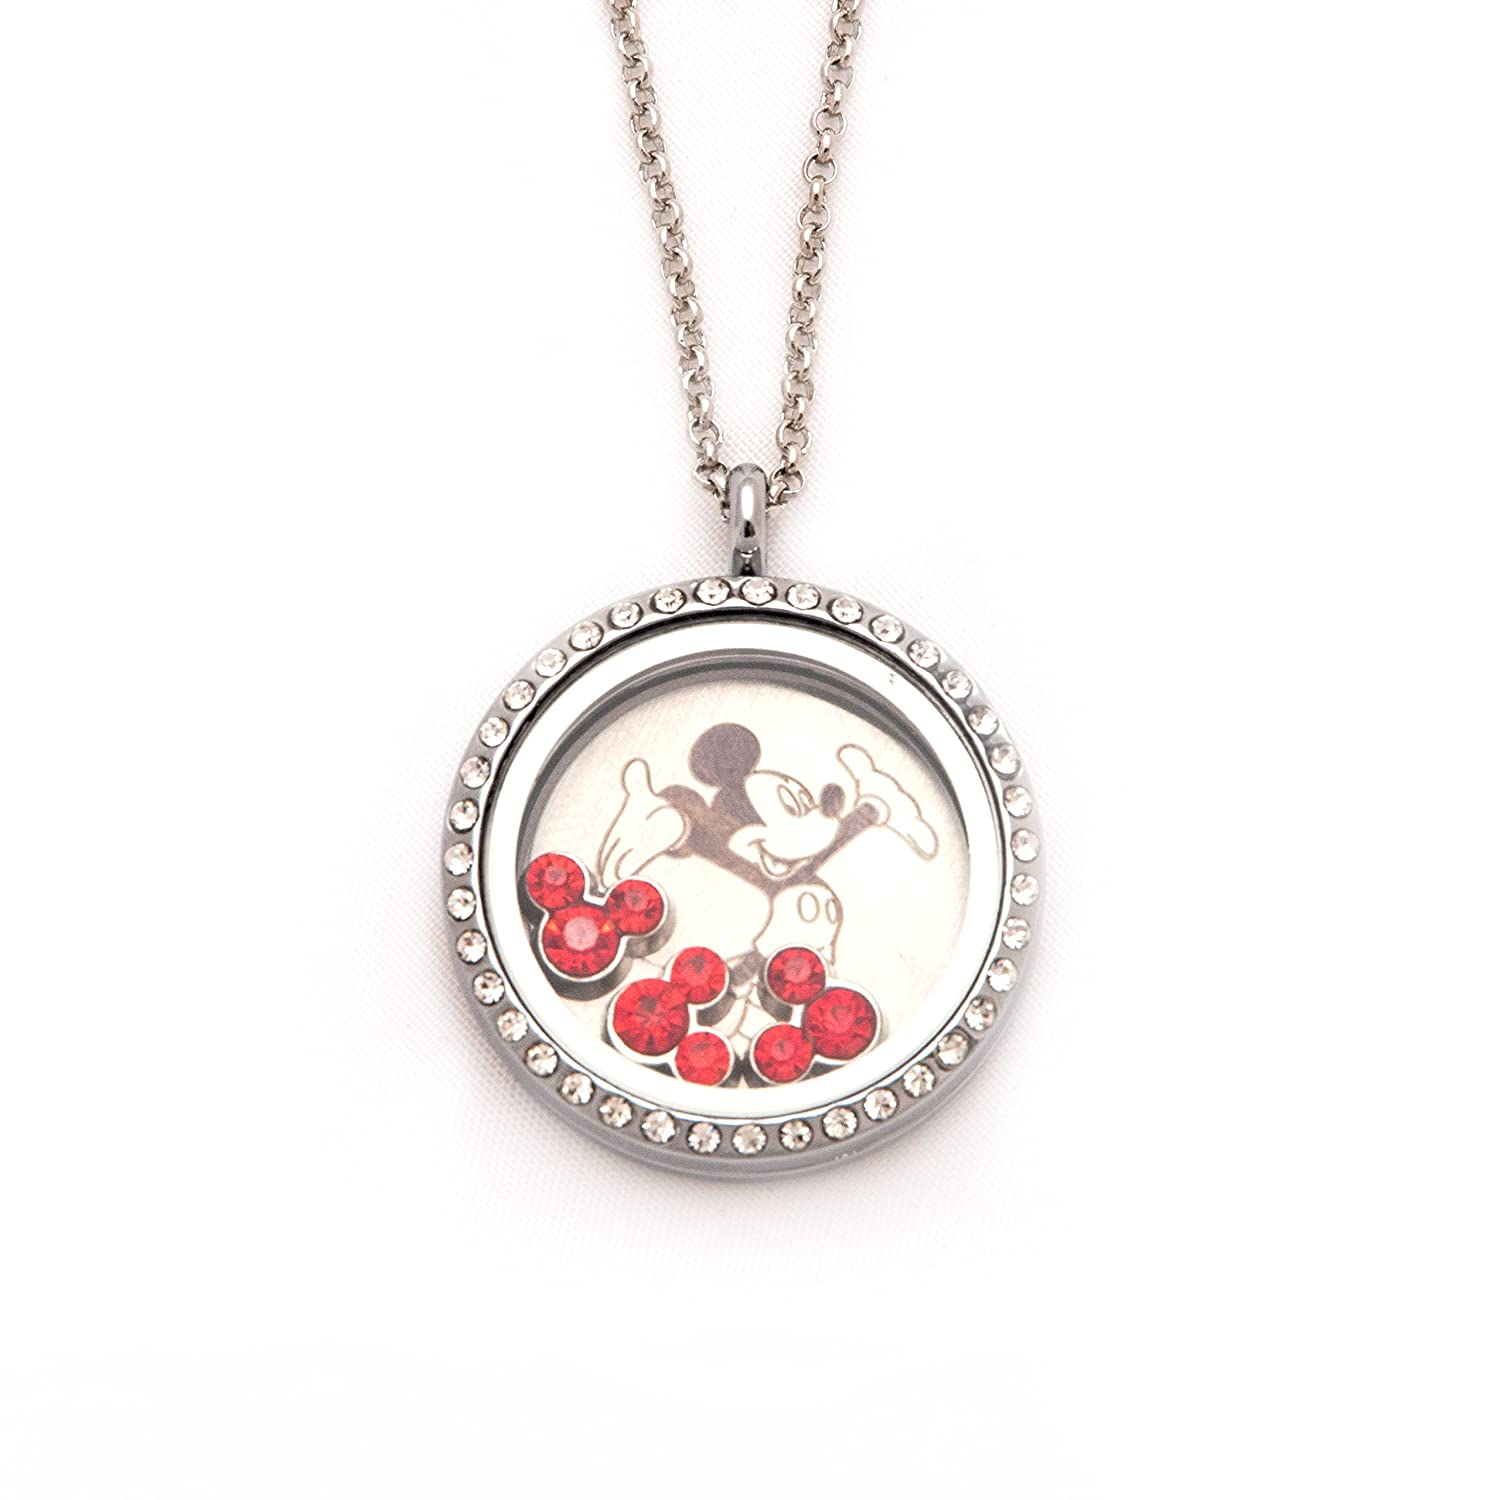 Fuller Joy 30mm Round Rhinestone Magnetic Floating Locket Necklace with Charms